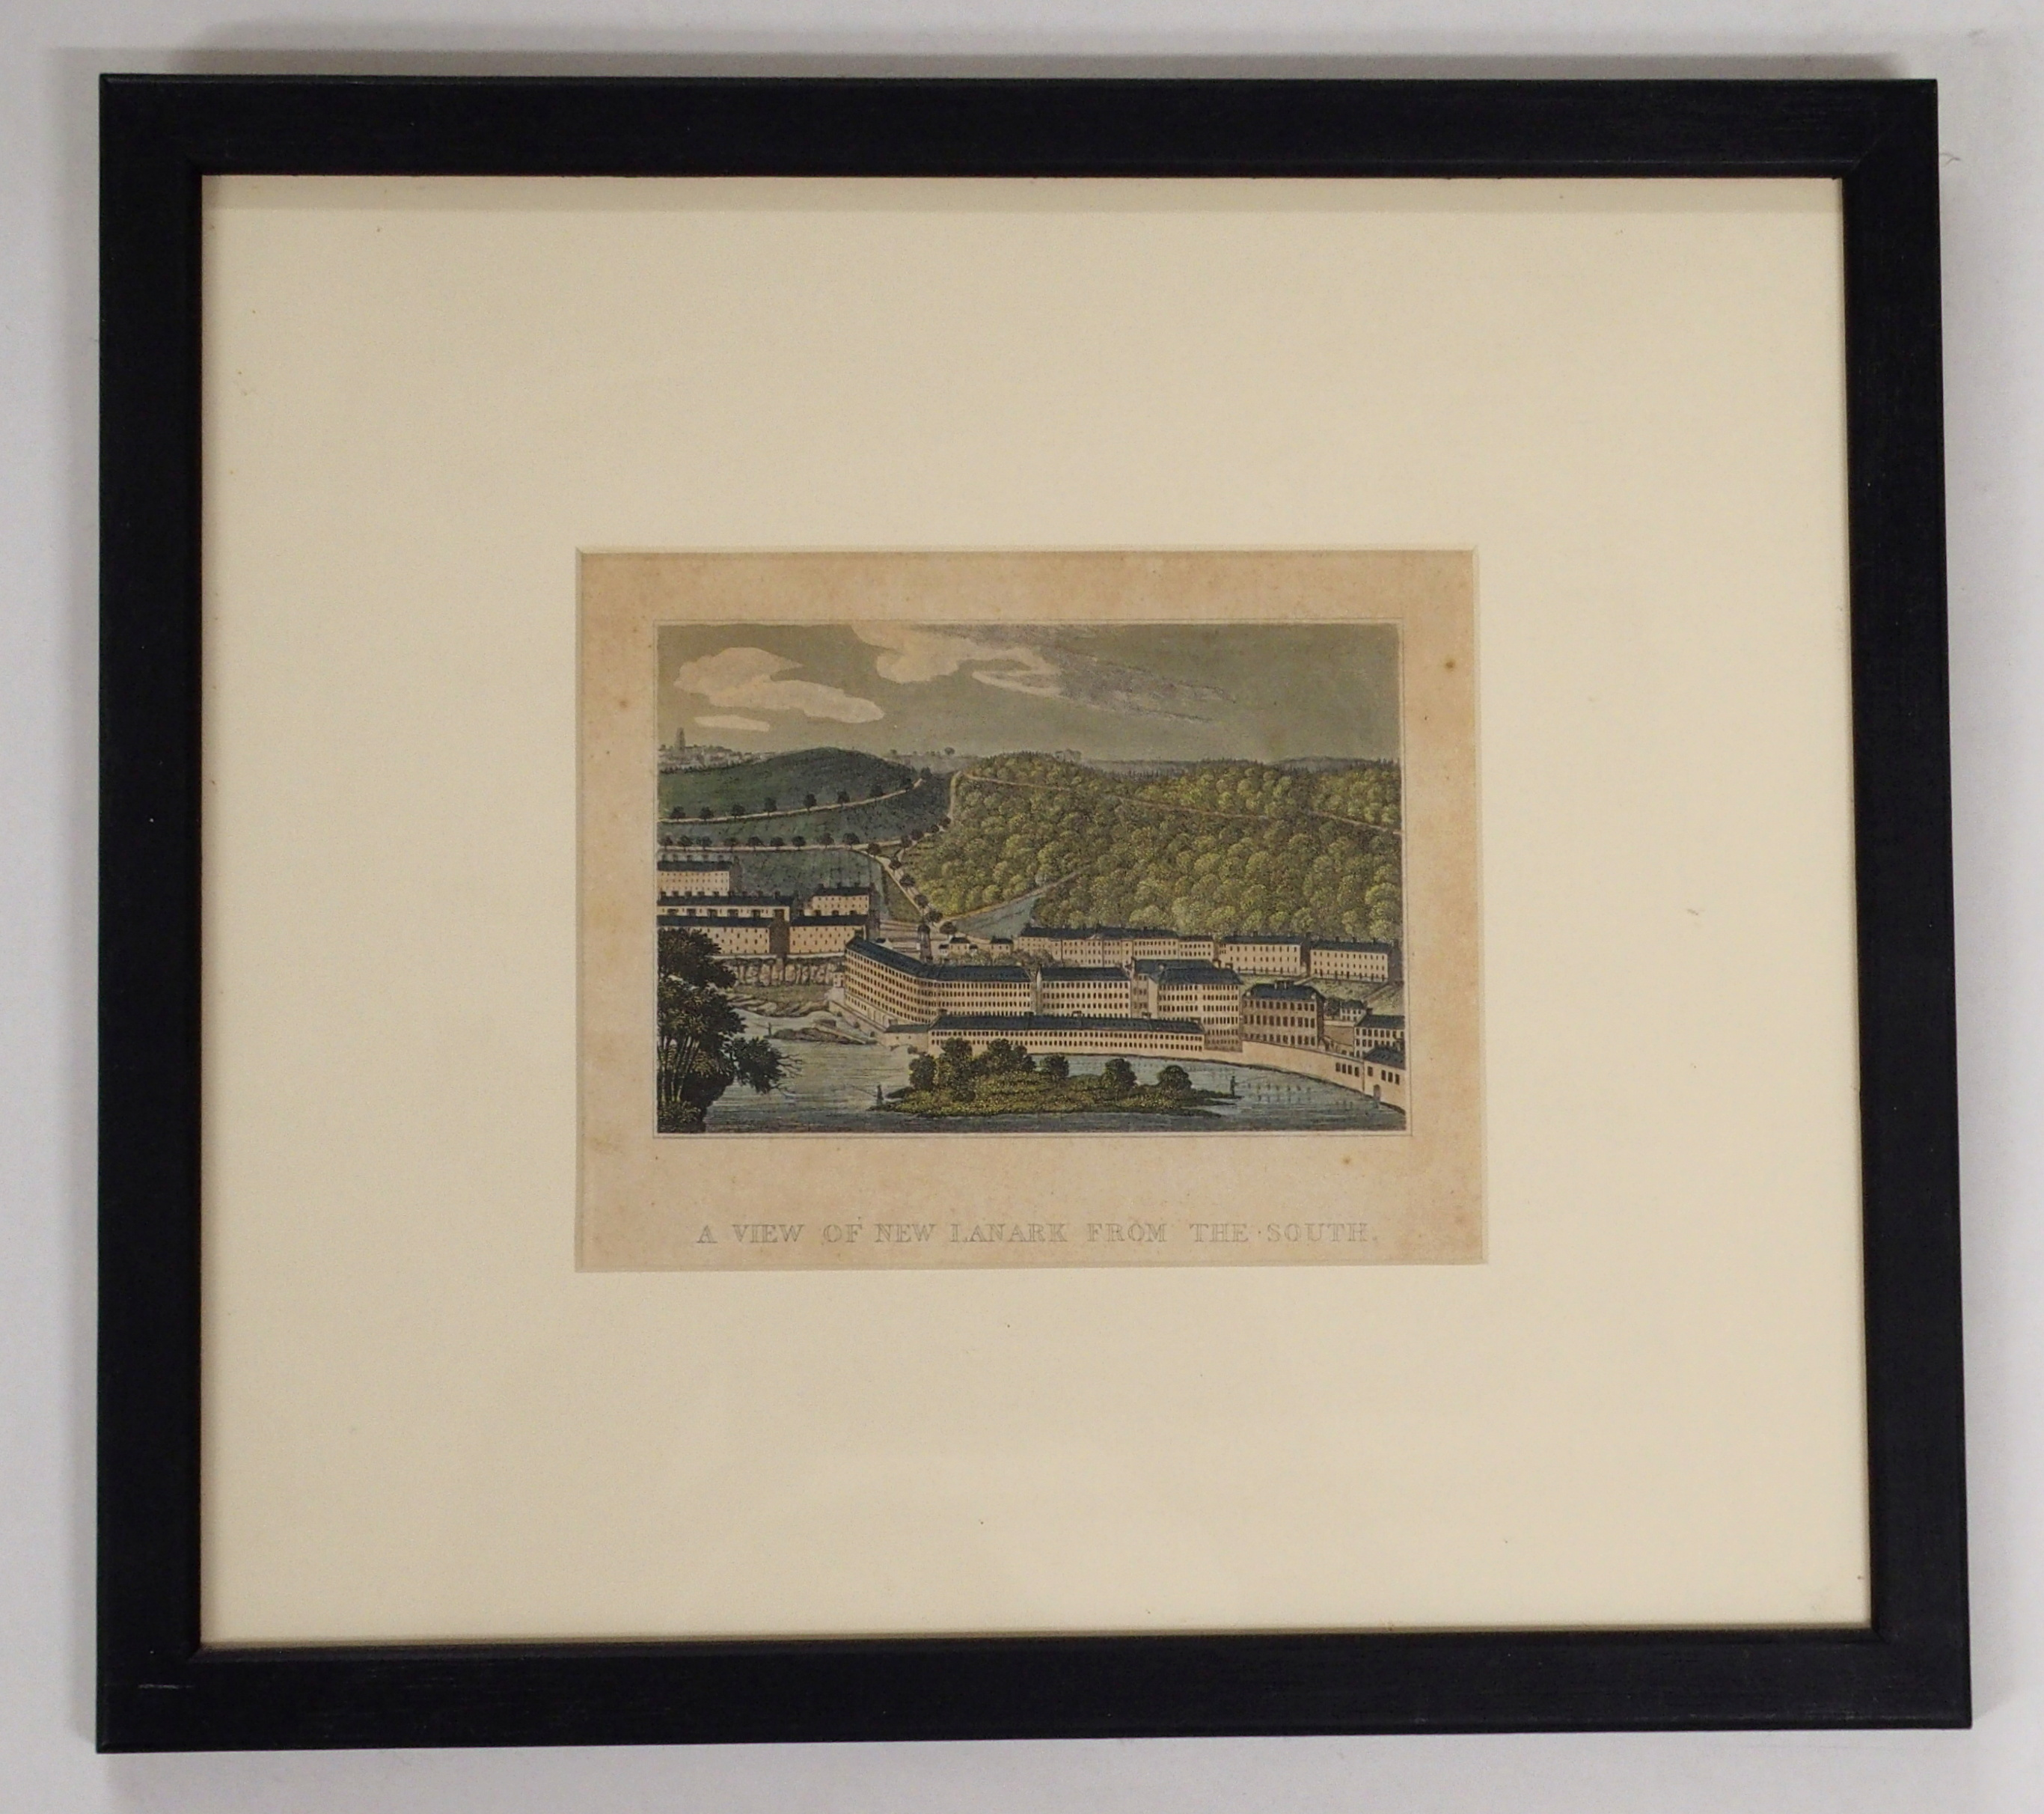 AFTER CLARK THE TOWN OF LANARK aquatint, 46 x 59cm, A View of New Lanark from the South, 14 x - Image 3 of 6